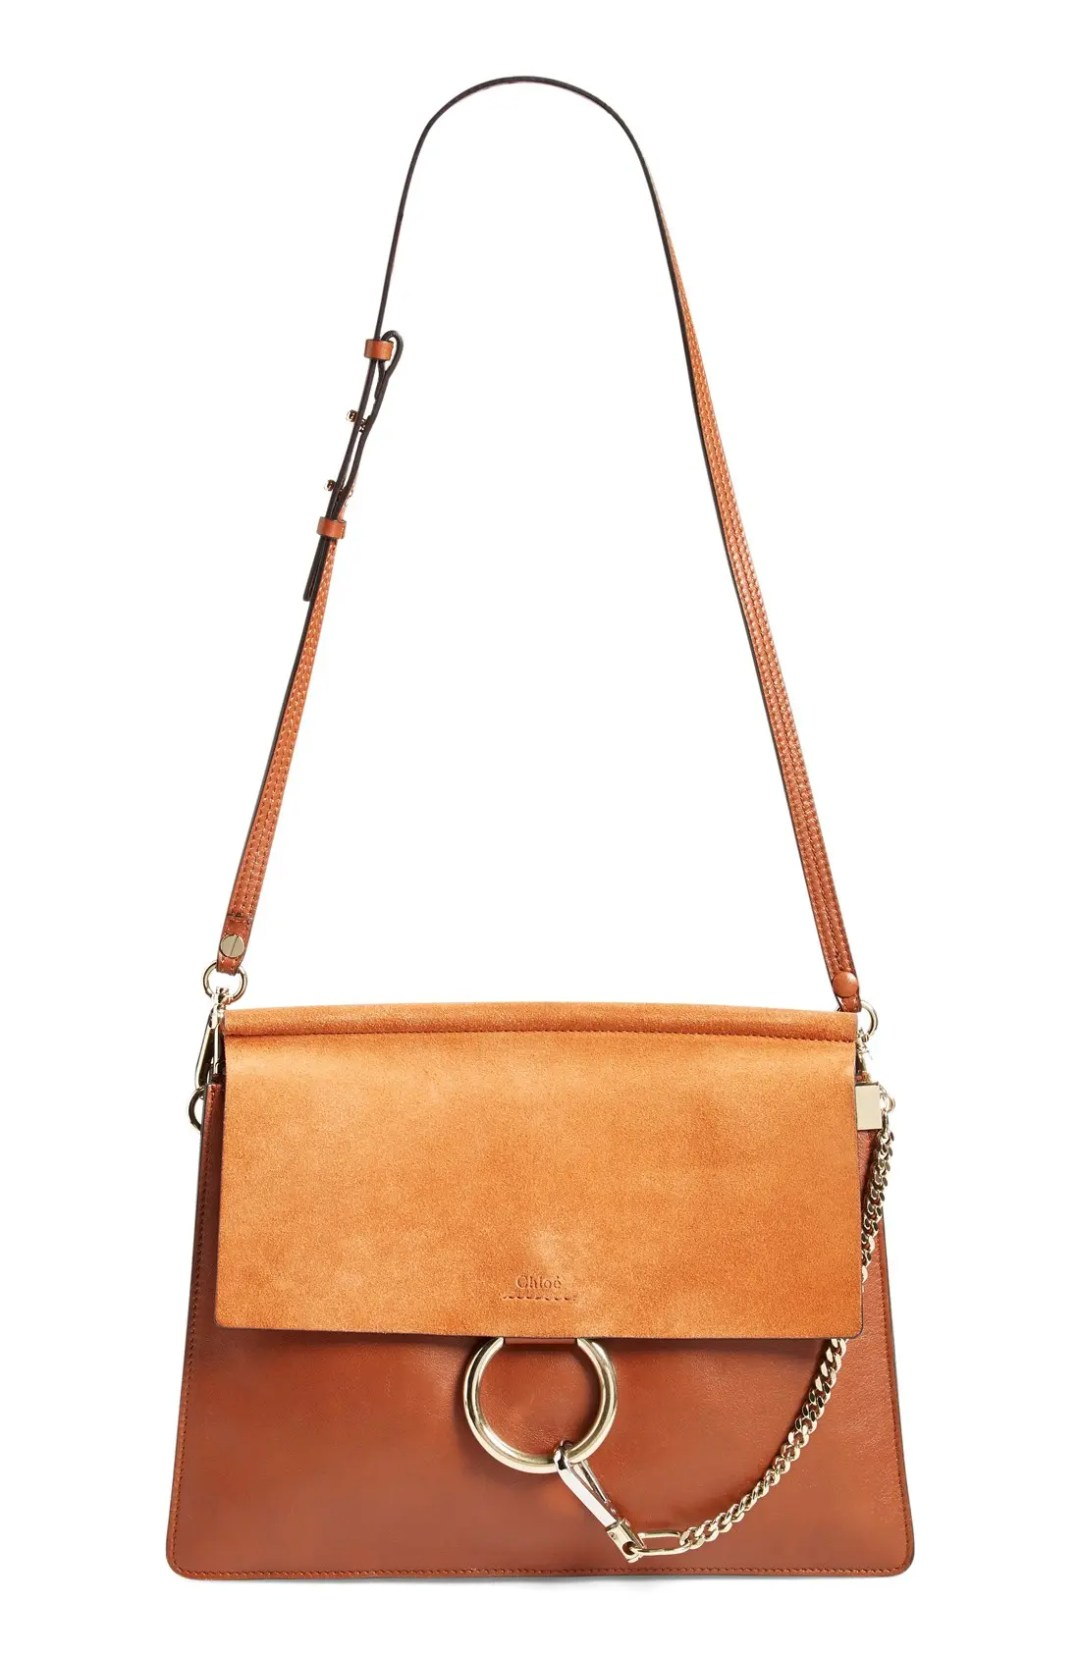 f2c6d37641fb0 Chloé Faye Suede & Leather Shoulder Bag